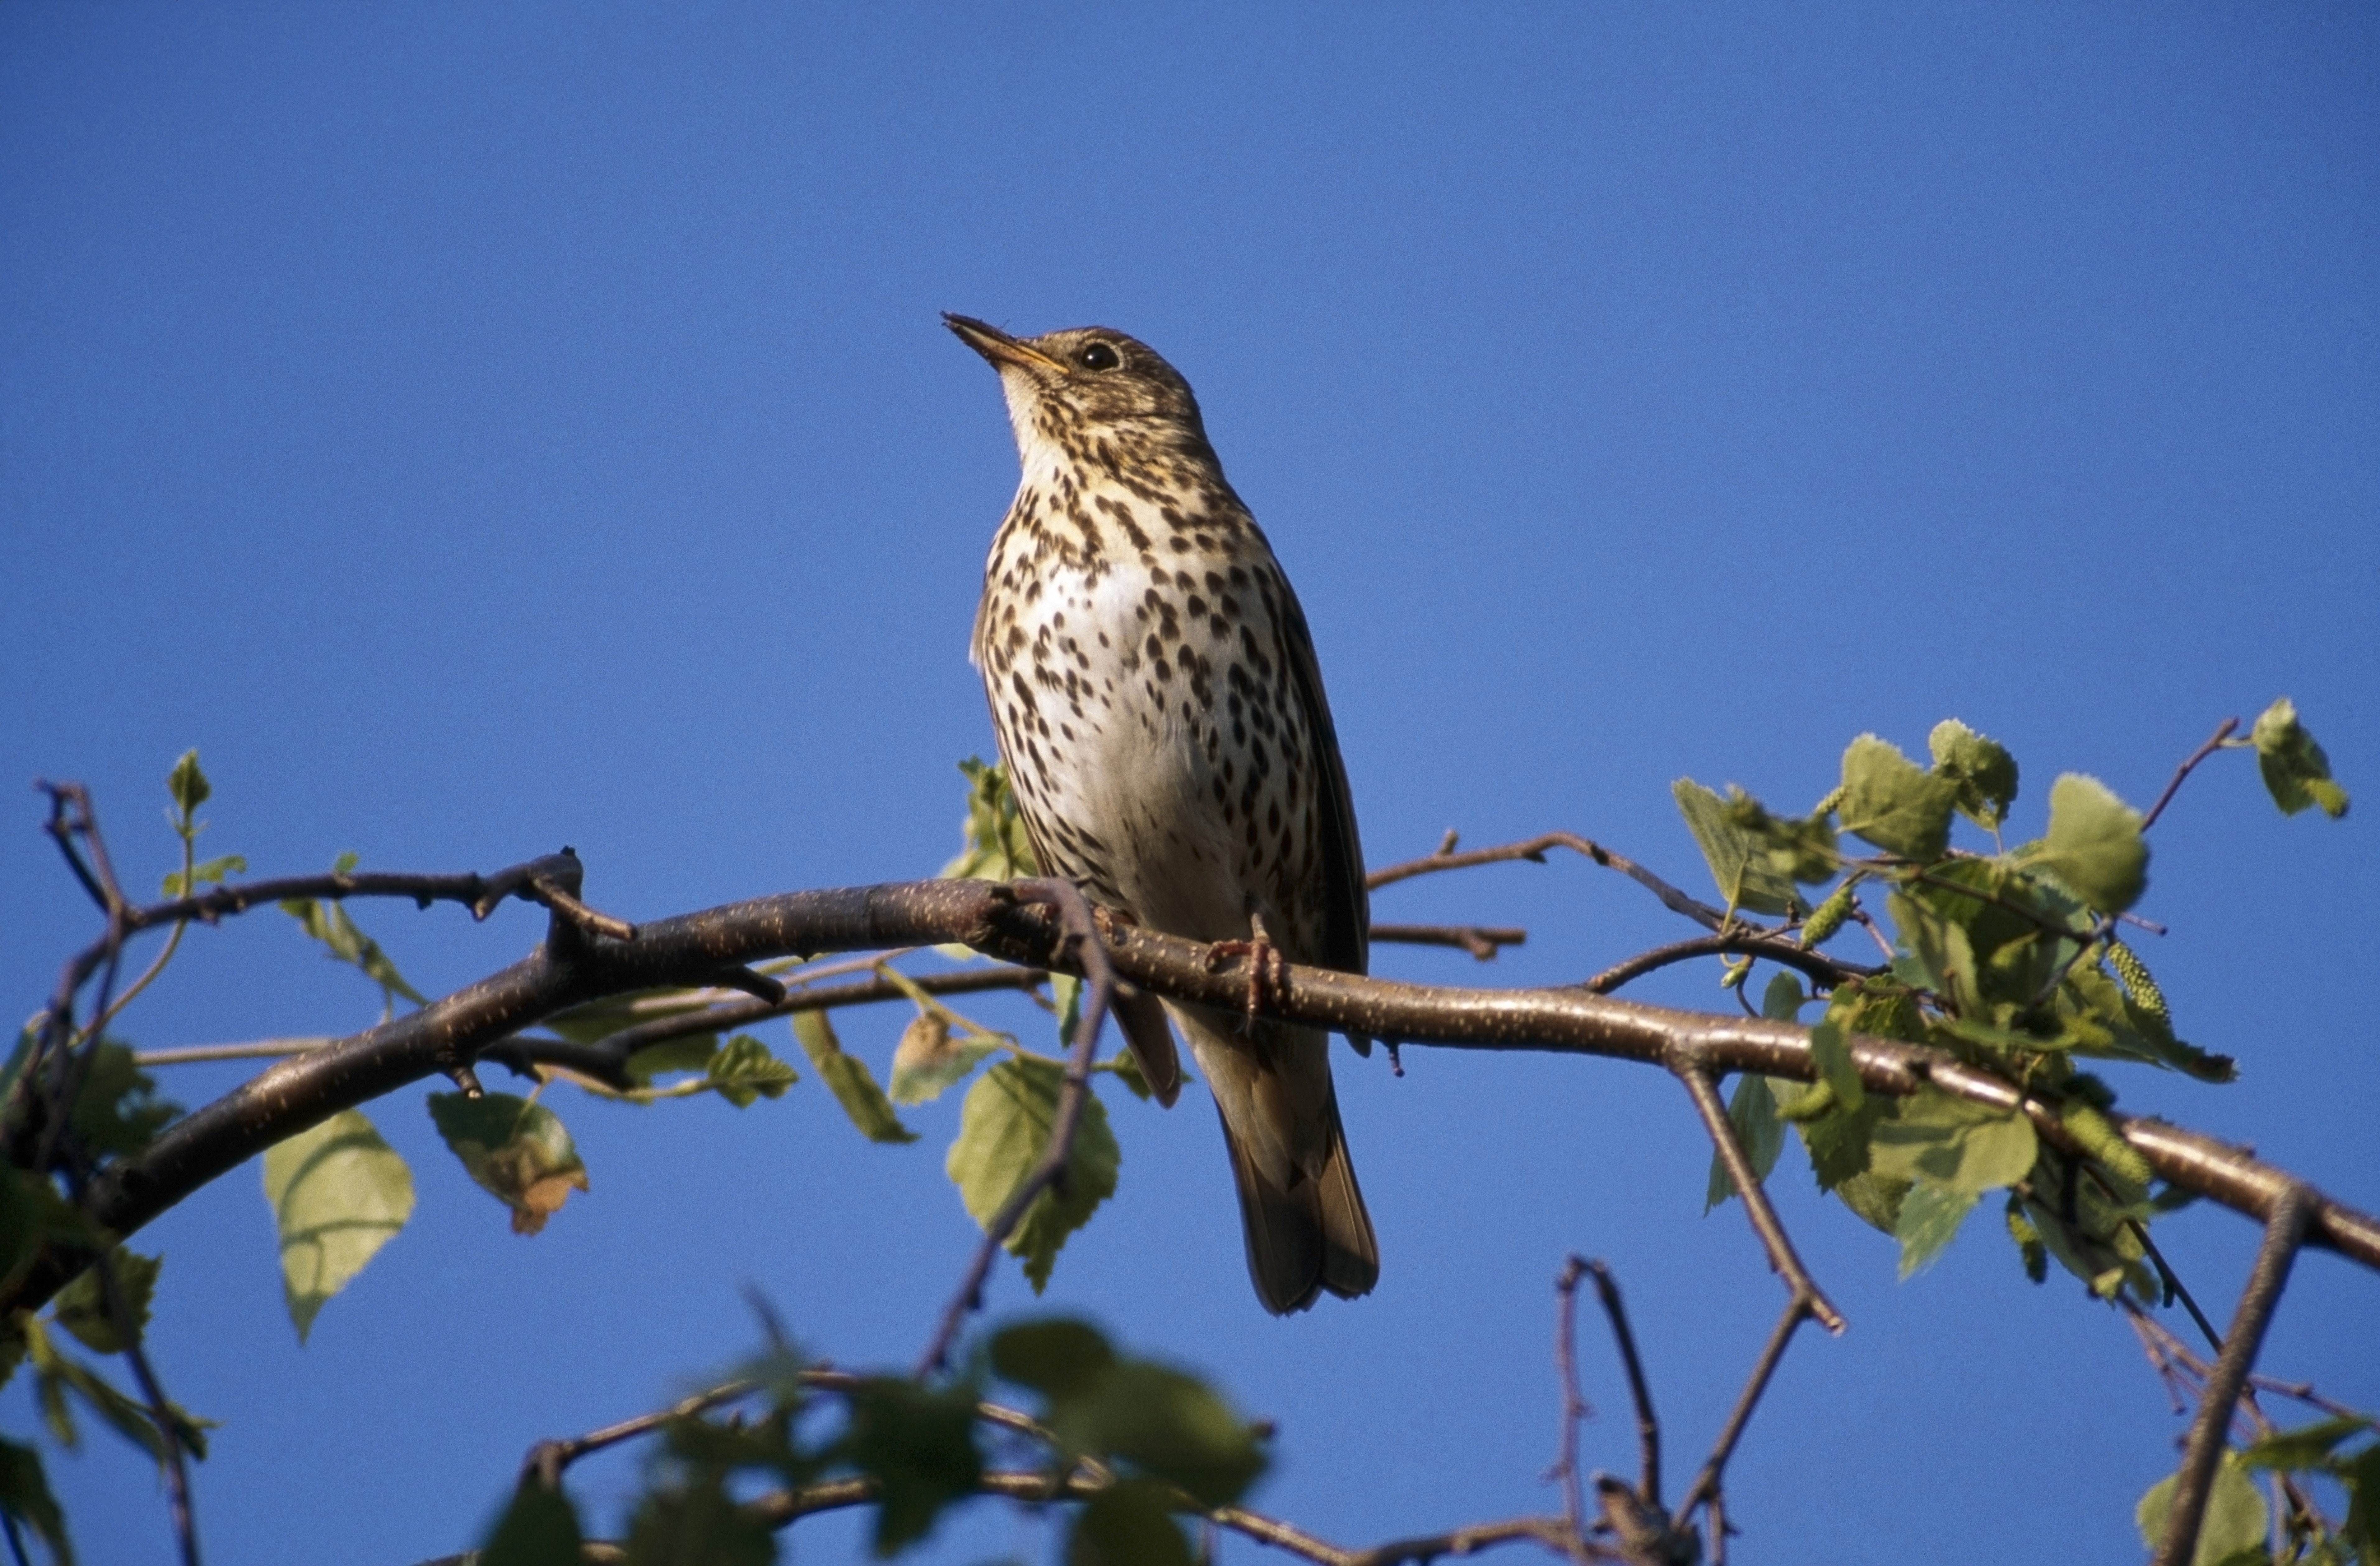 Song Thrush Nesting And Breeding Habits The Rspb